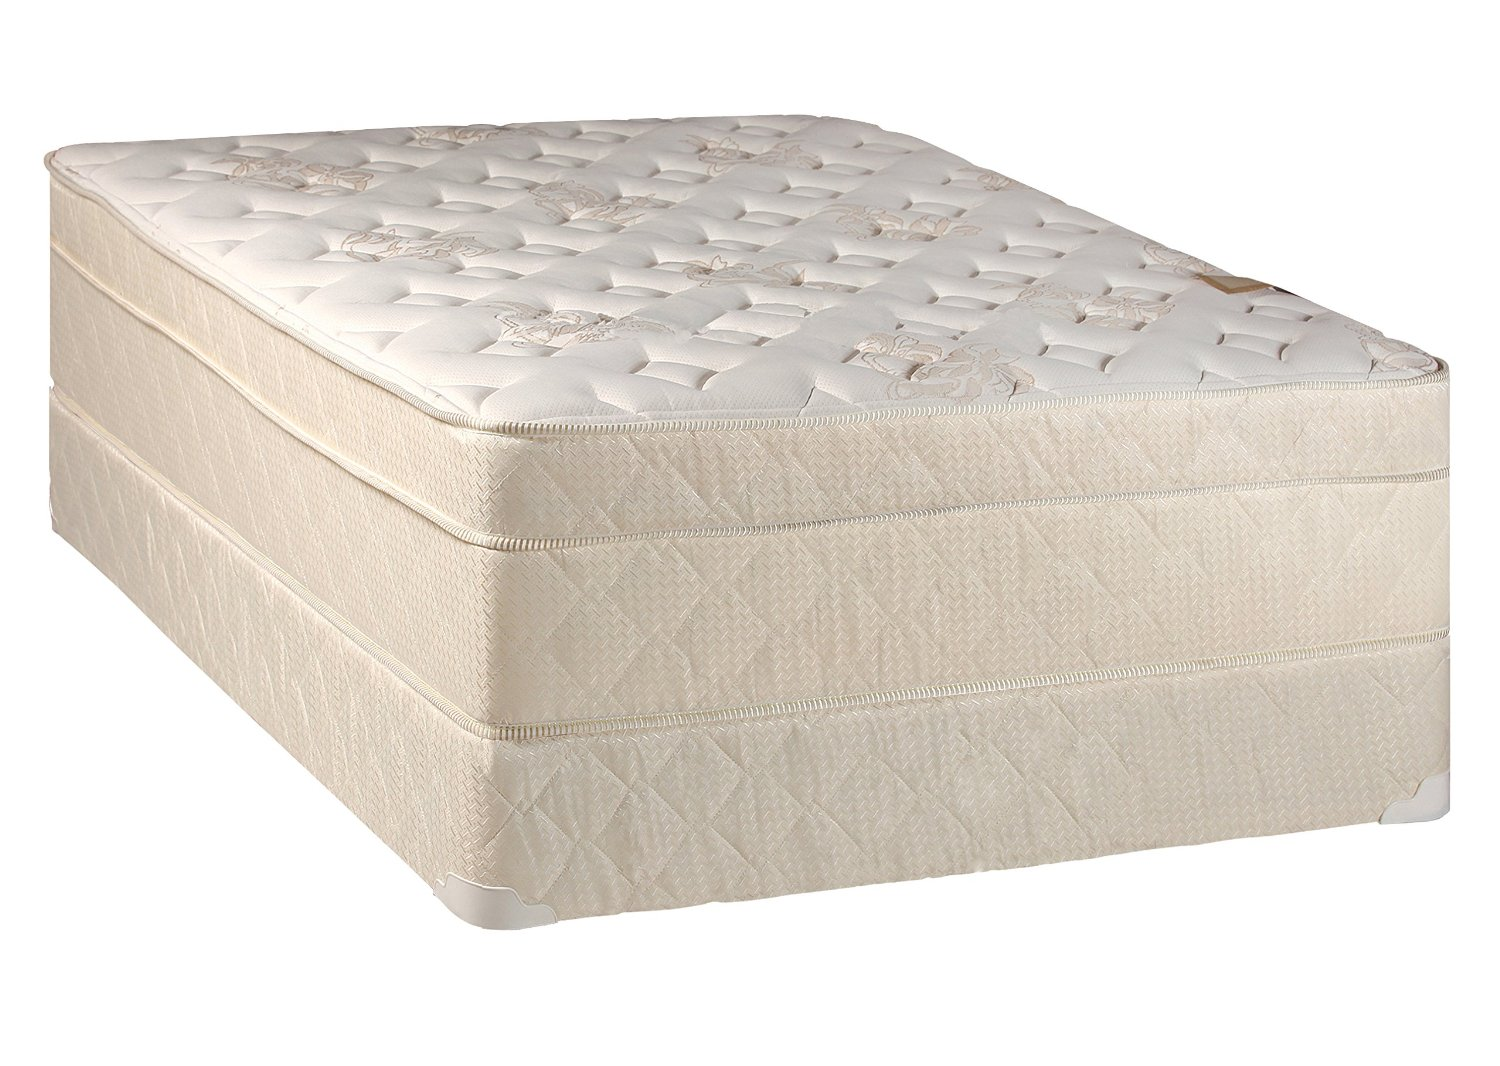 Top 10 Queen Size Mattress and Box Spring Reviews — Your Best Choice in 2020